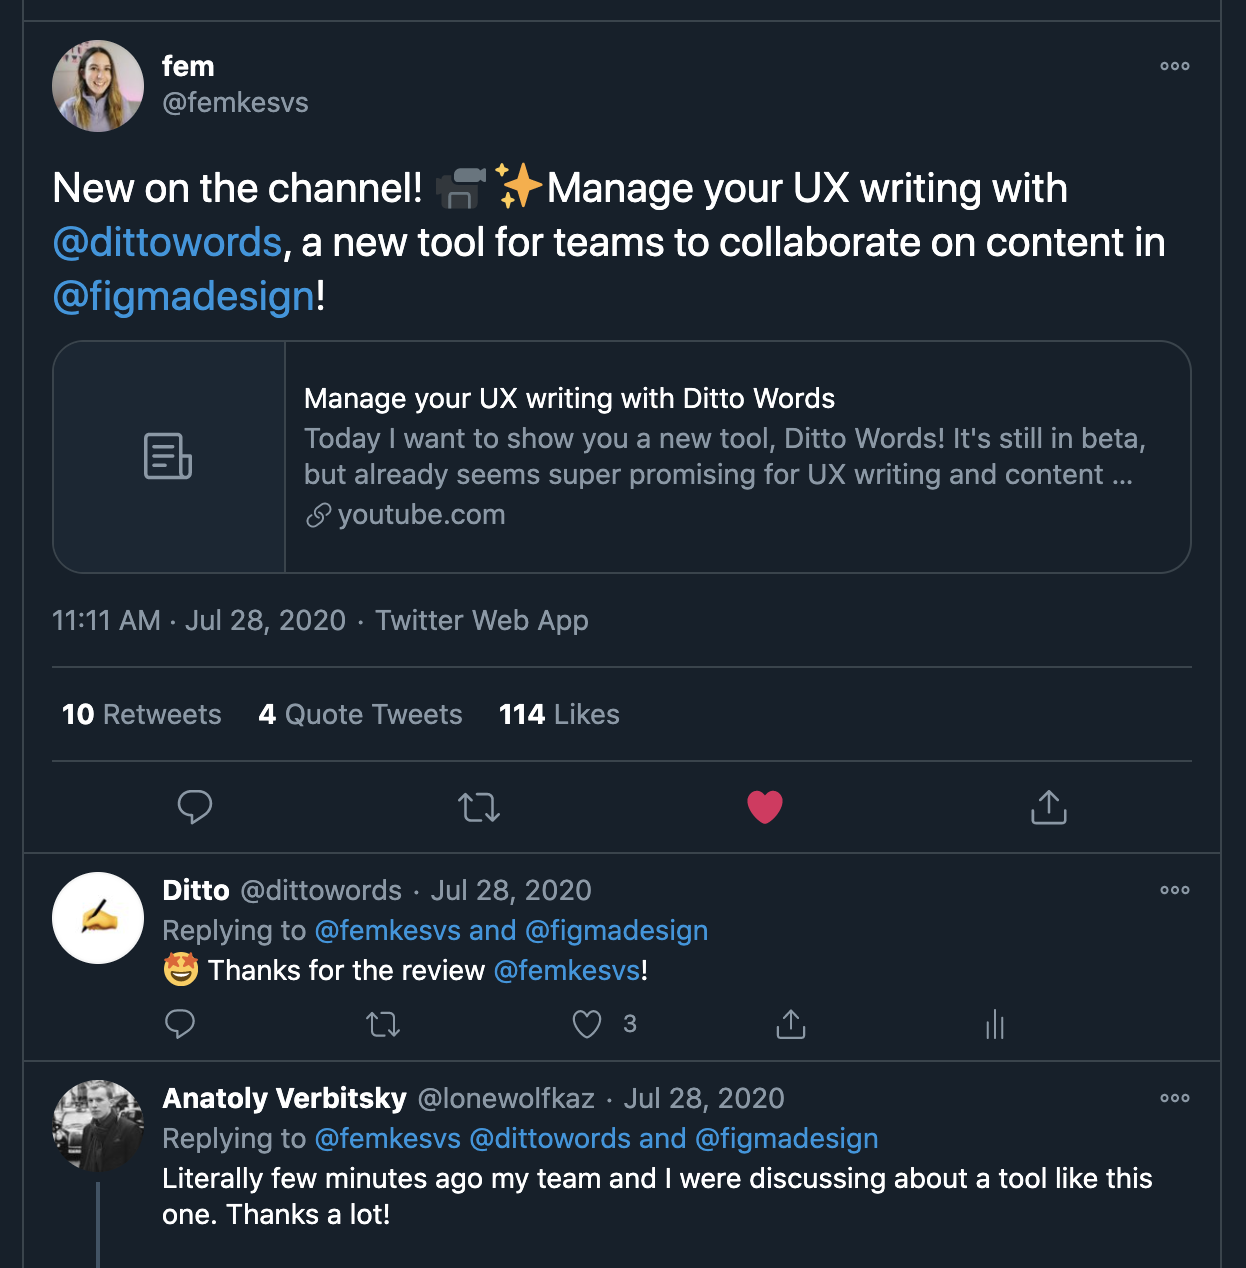 "Tweet from Femke featuring her video of Ditto: ""New on the channel! Manage your UX writing with @dittowords, a new tool for teams to collaborate on content in @figmadesign!"""